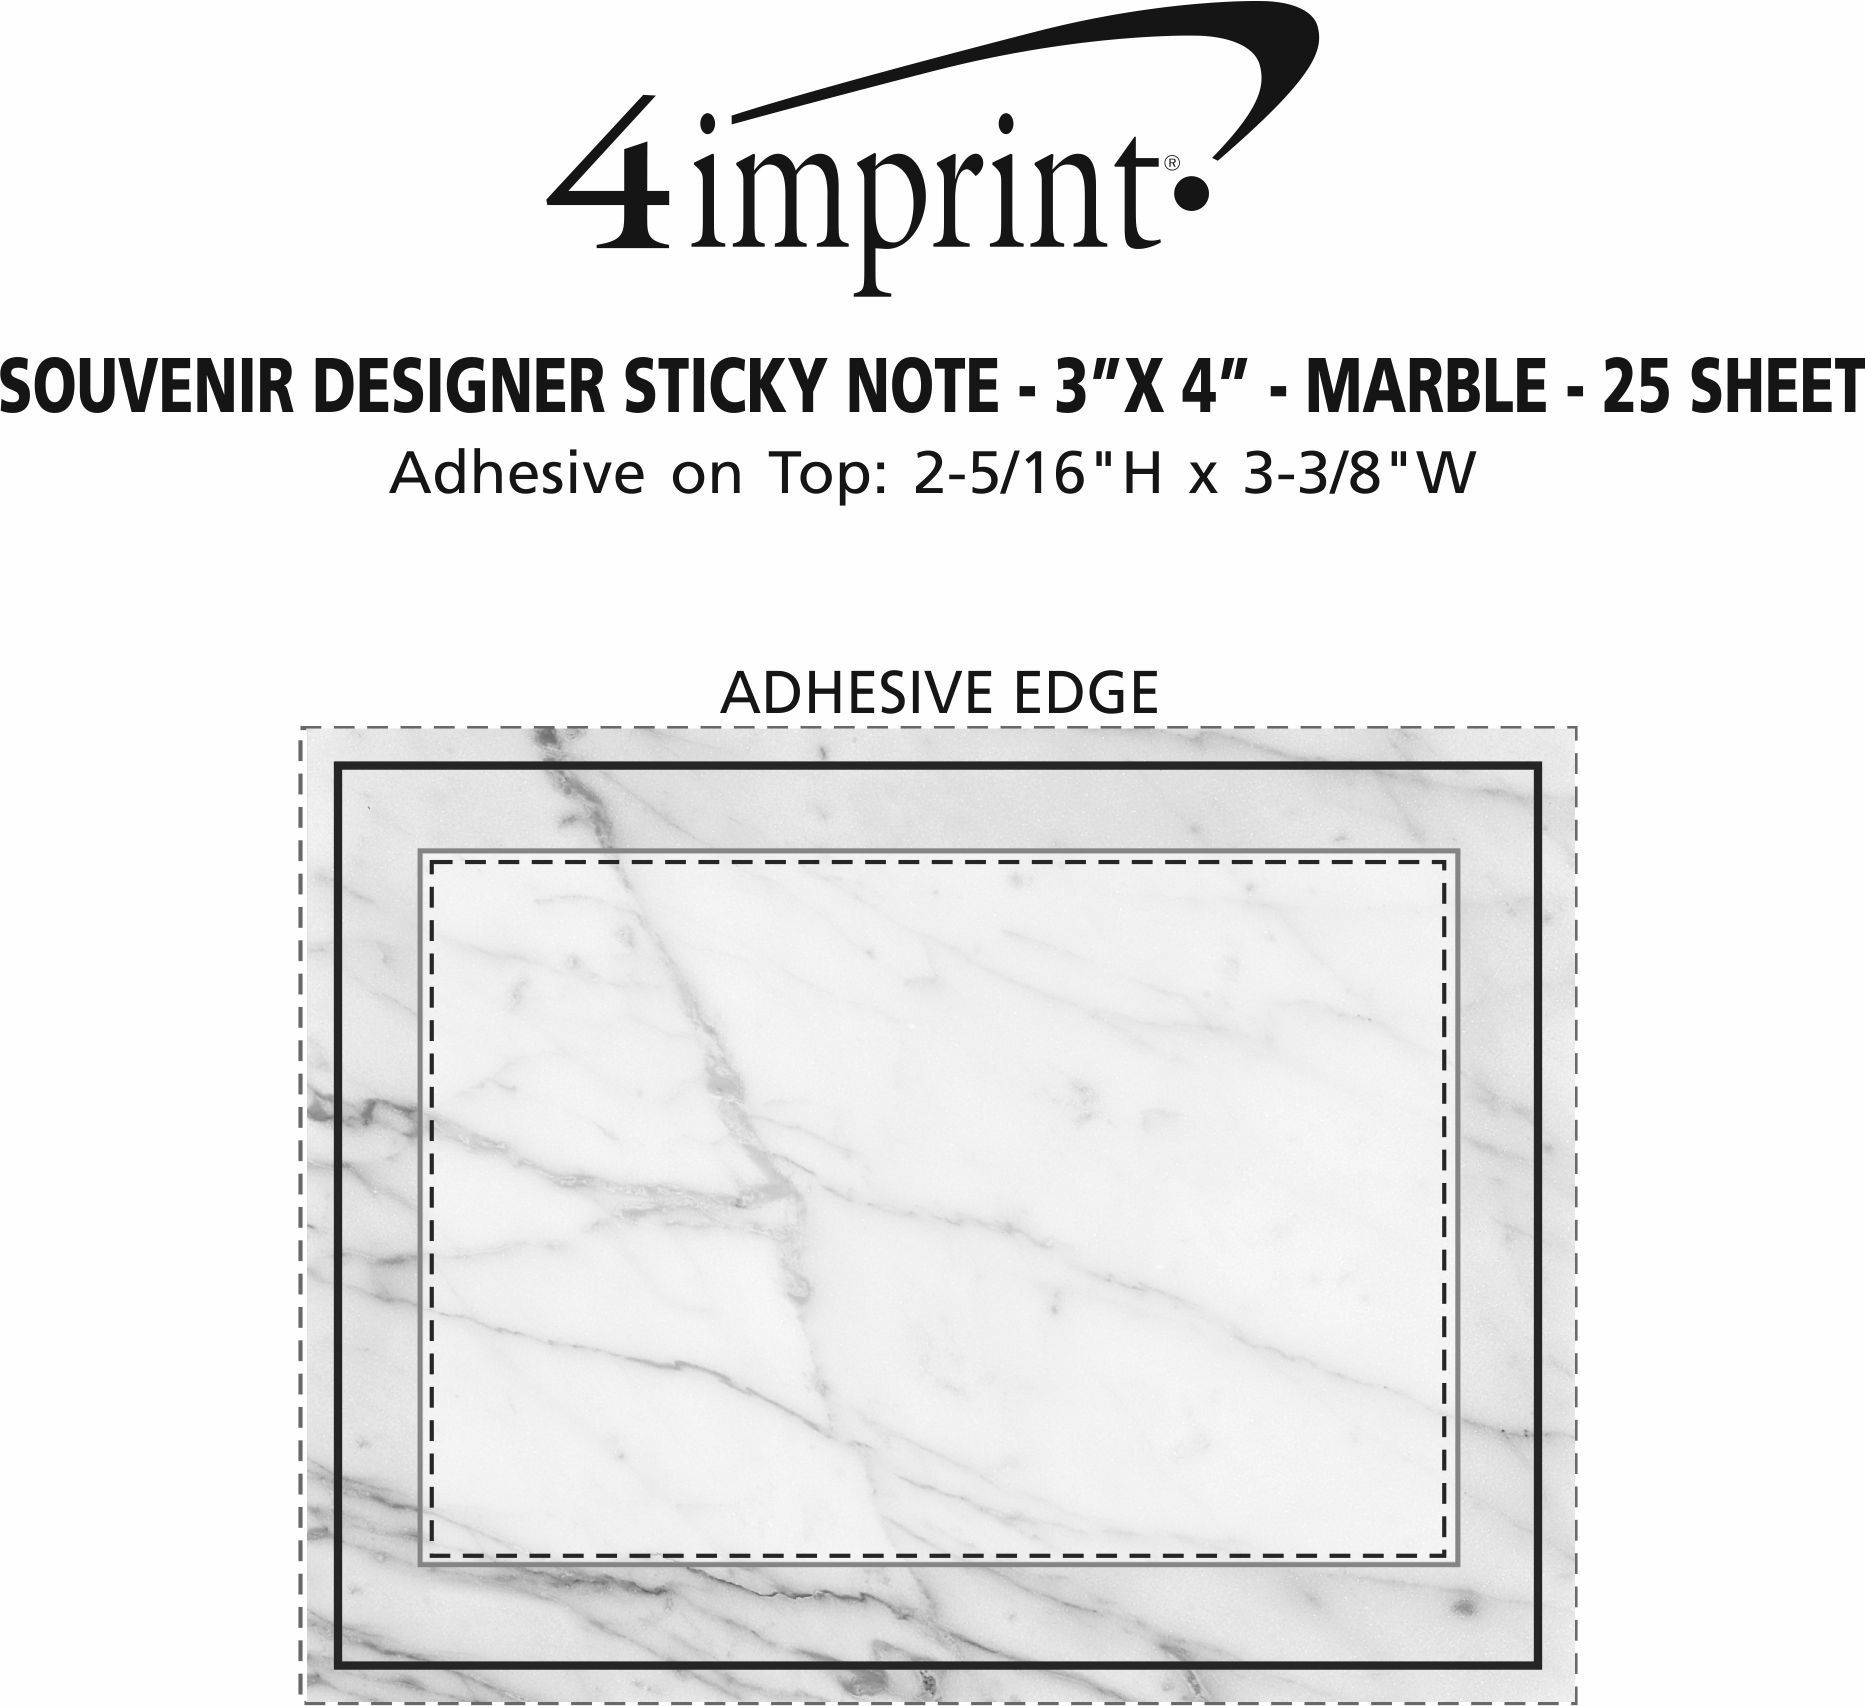 """Imprint Area of Bic Sticky Note - Designer - 3"""" x 4"""" - Marble - 25 Sheet"""